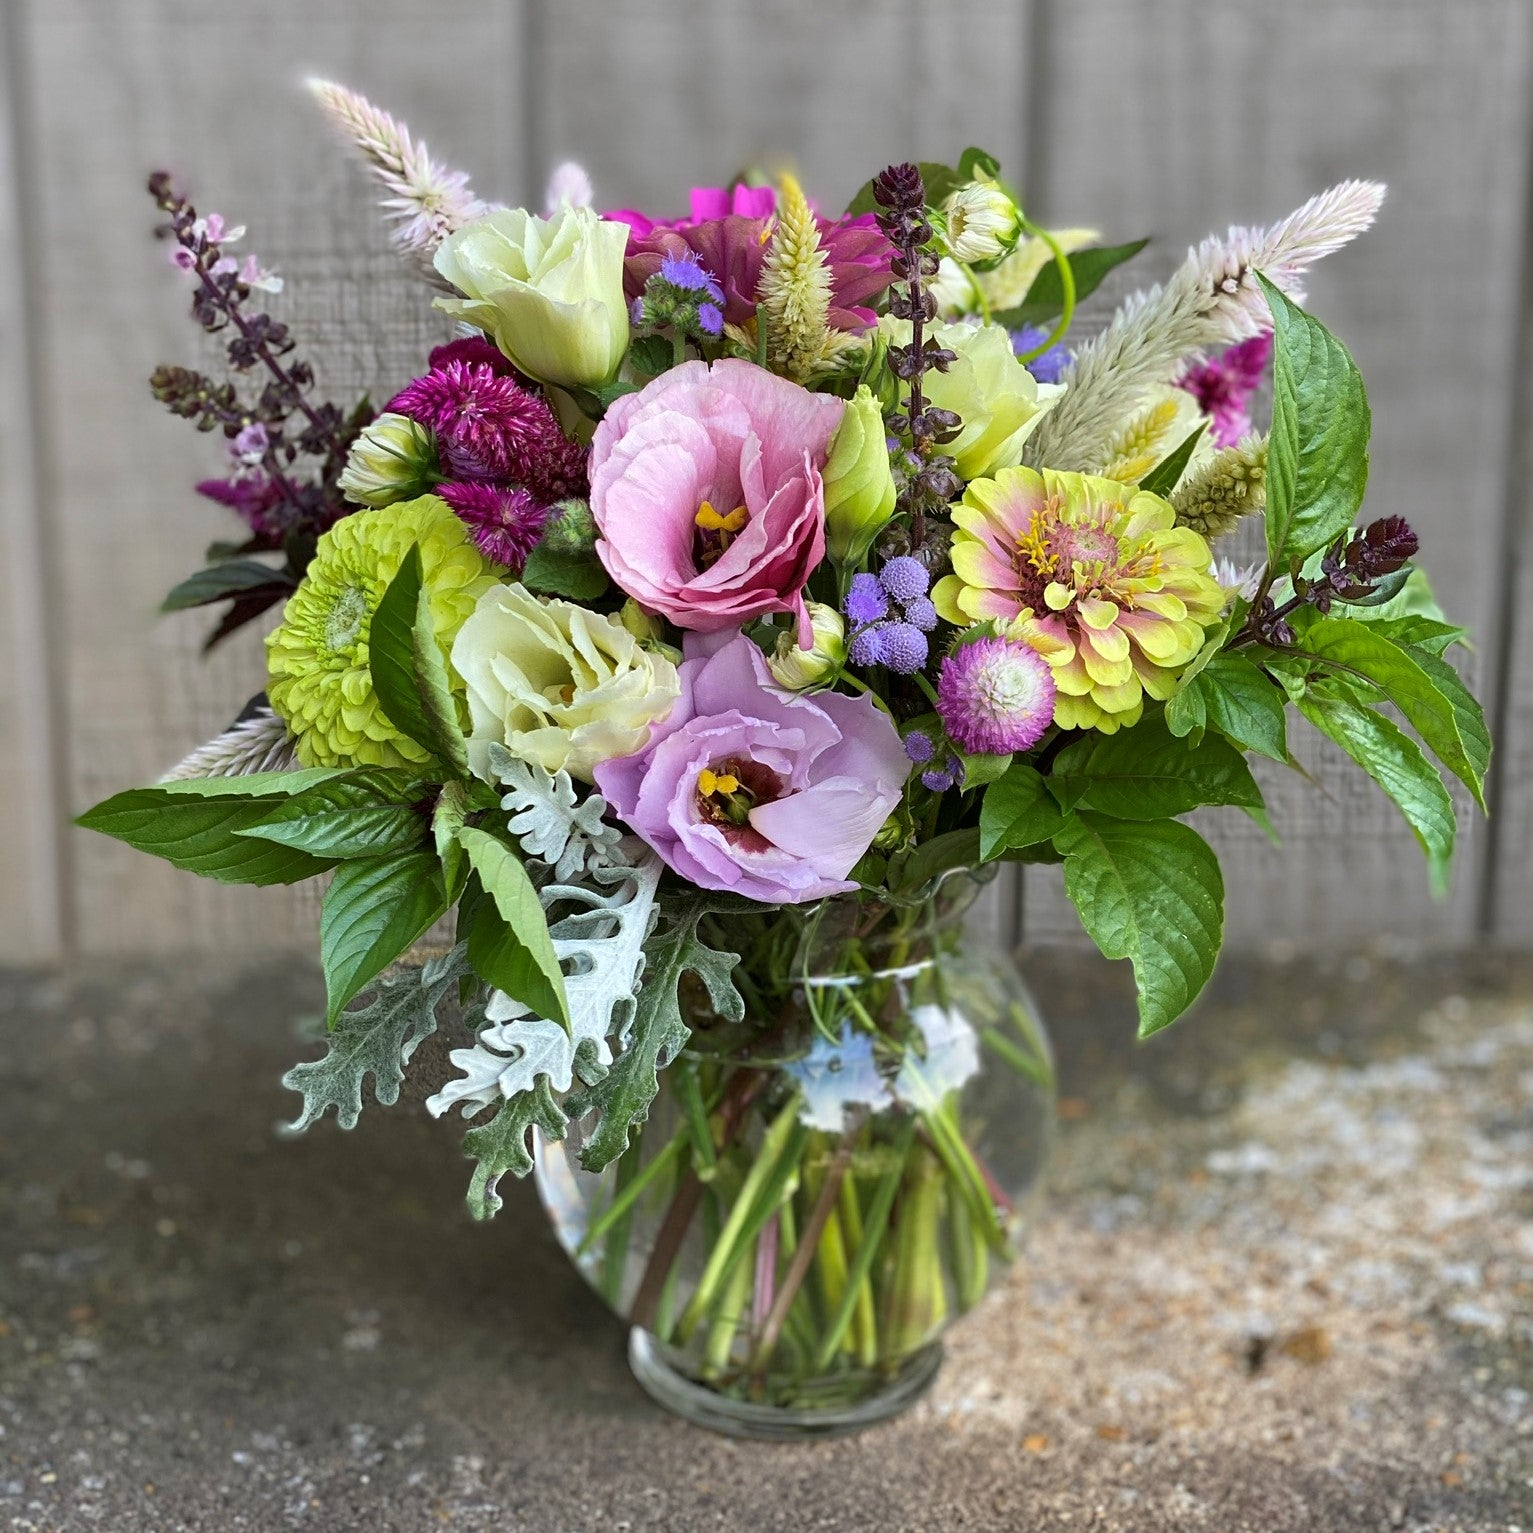 How to Build a Small Seasonal Bouquet